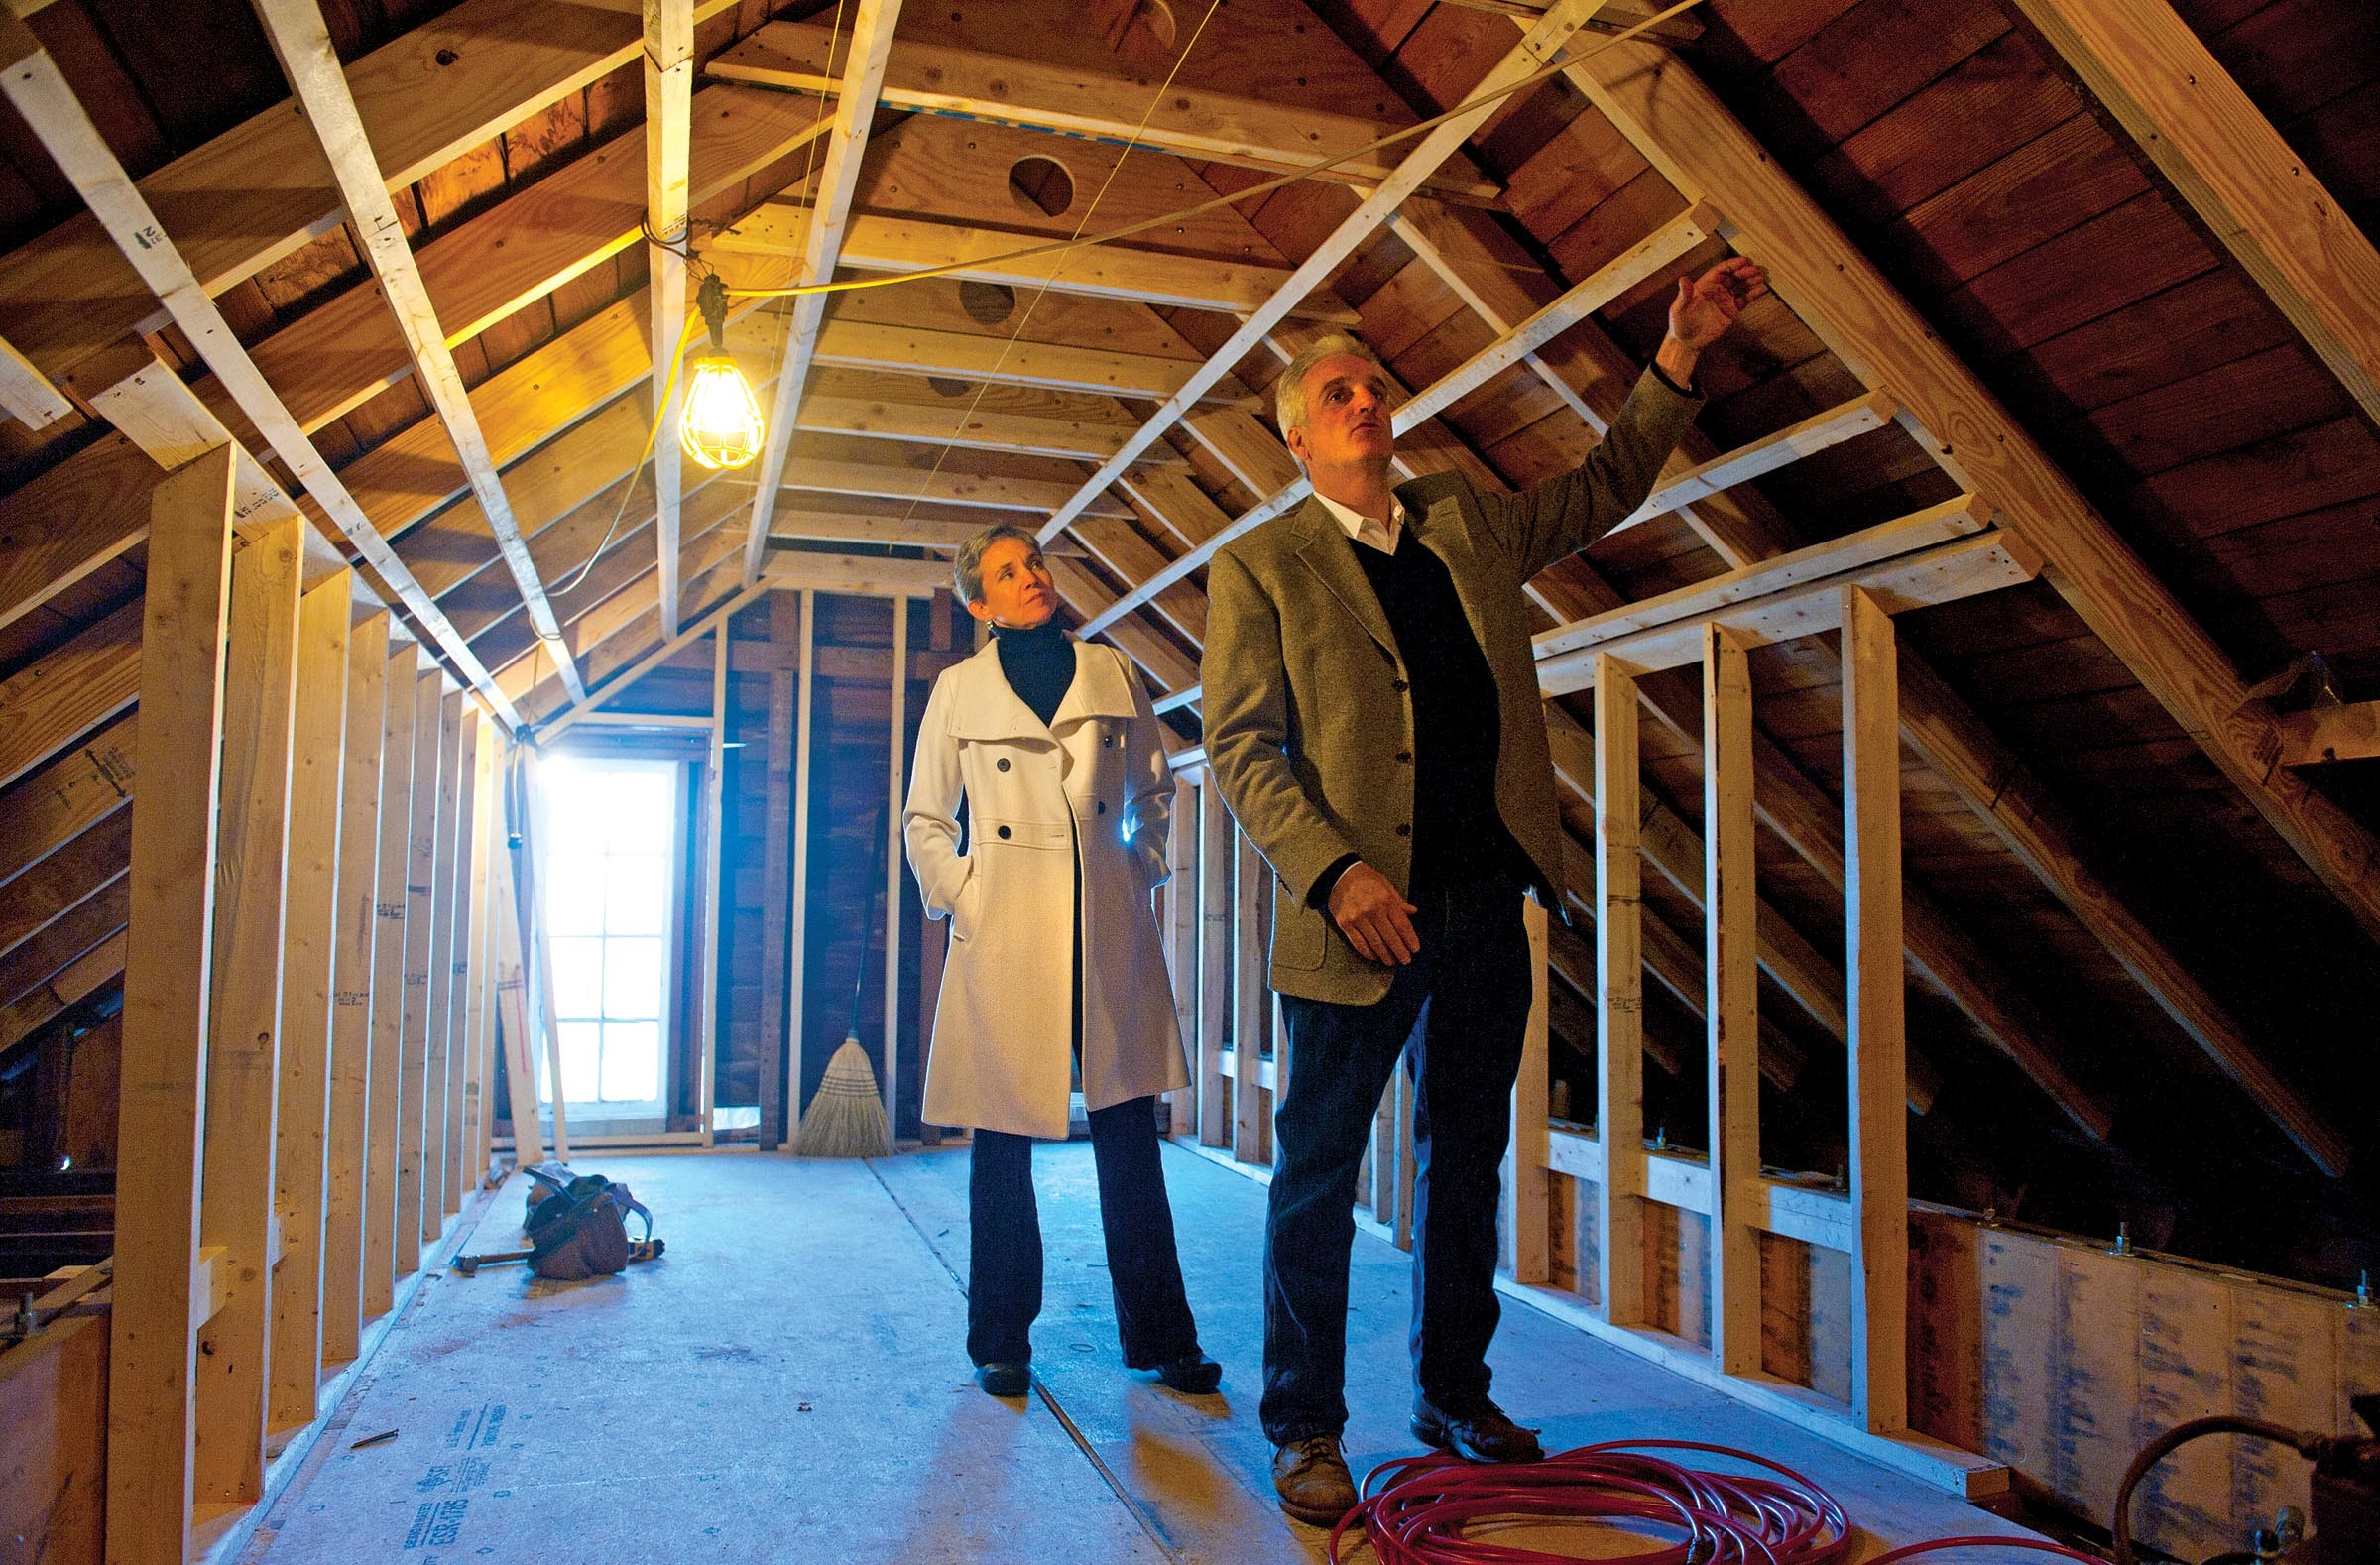 Paul and Julie Weissend inspect renovation progress on the third floor of Goshen, a historic Gloucester County farmhouse that dates to 1750 and where the overall project includes the drilling of geo-thermal wells. - SCOTT ELMQUIST